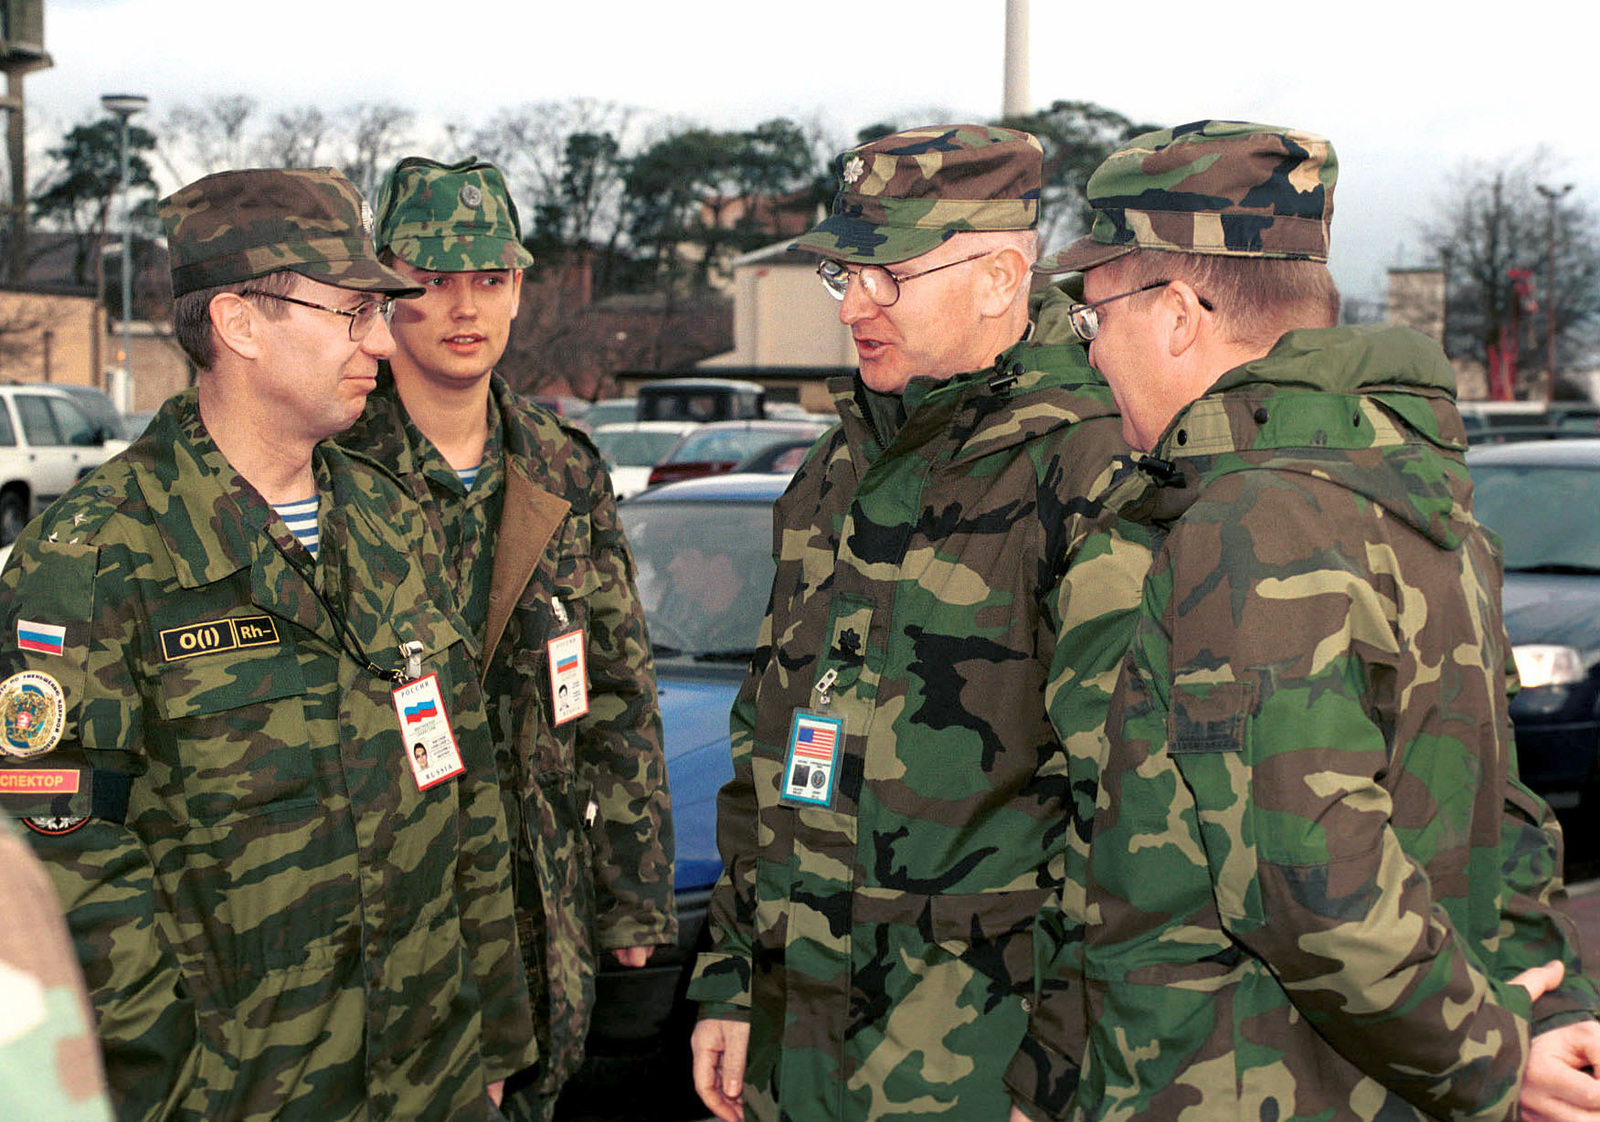 US Air Force Lieutenant Colonel Brad Davis, (center) Defense Threat Reduction Agency (DTRA) Team CHIEF, greets Russian Colonel Aleksandr Migunov, (left) Conventional Armed Forces in Europe (CFE) Team CHIEF, during their arrival at Royal Air Force Lakenheath, United Kingdom